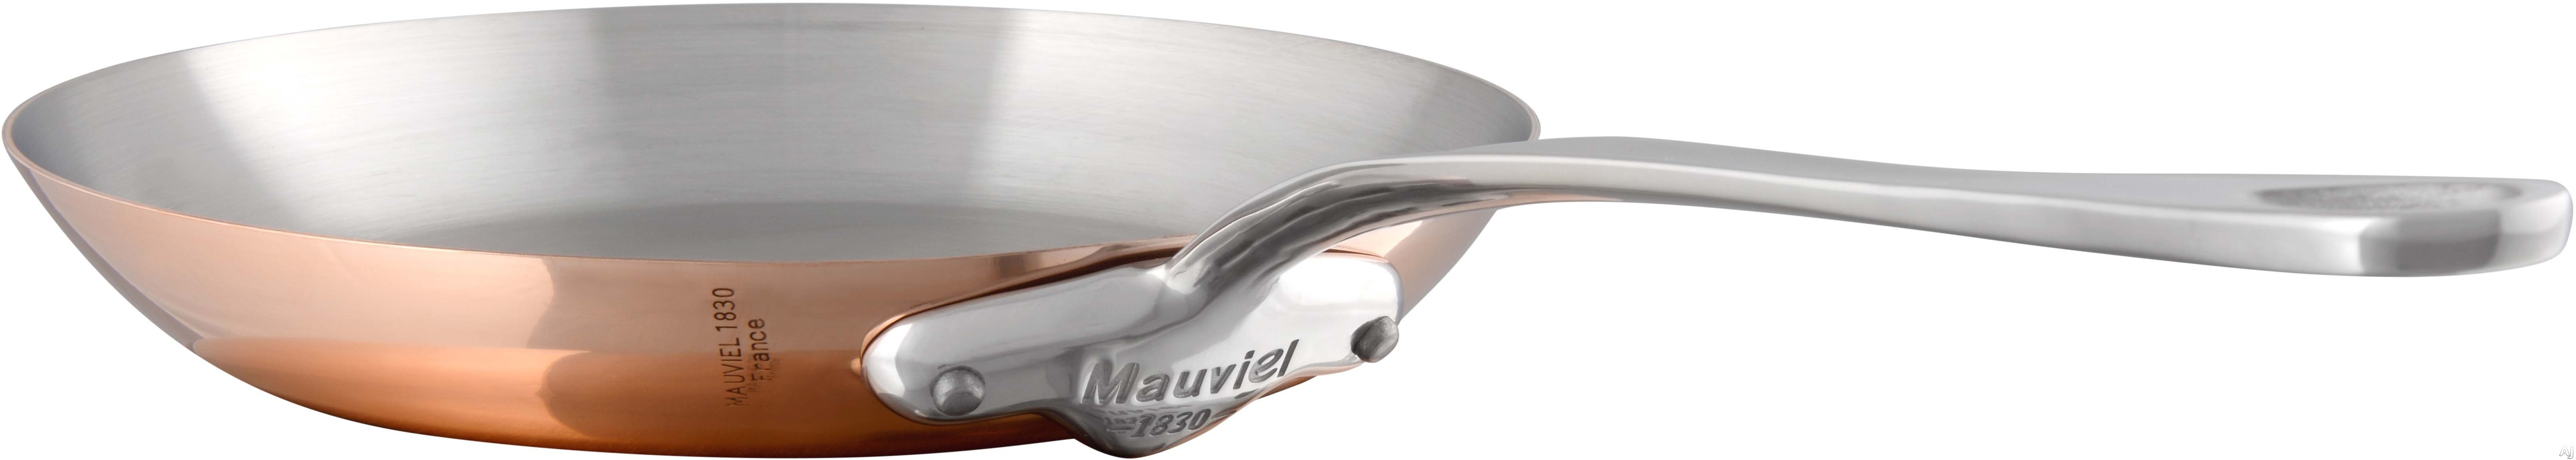 Mauviel 611326 M'150S 10-1/5 Inch Round Frying Pan with Copper Stainless Steel, High Performance and Non-Reactive